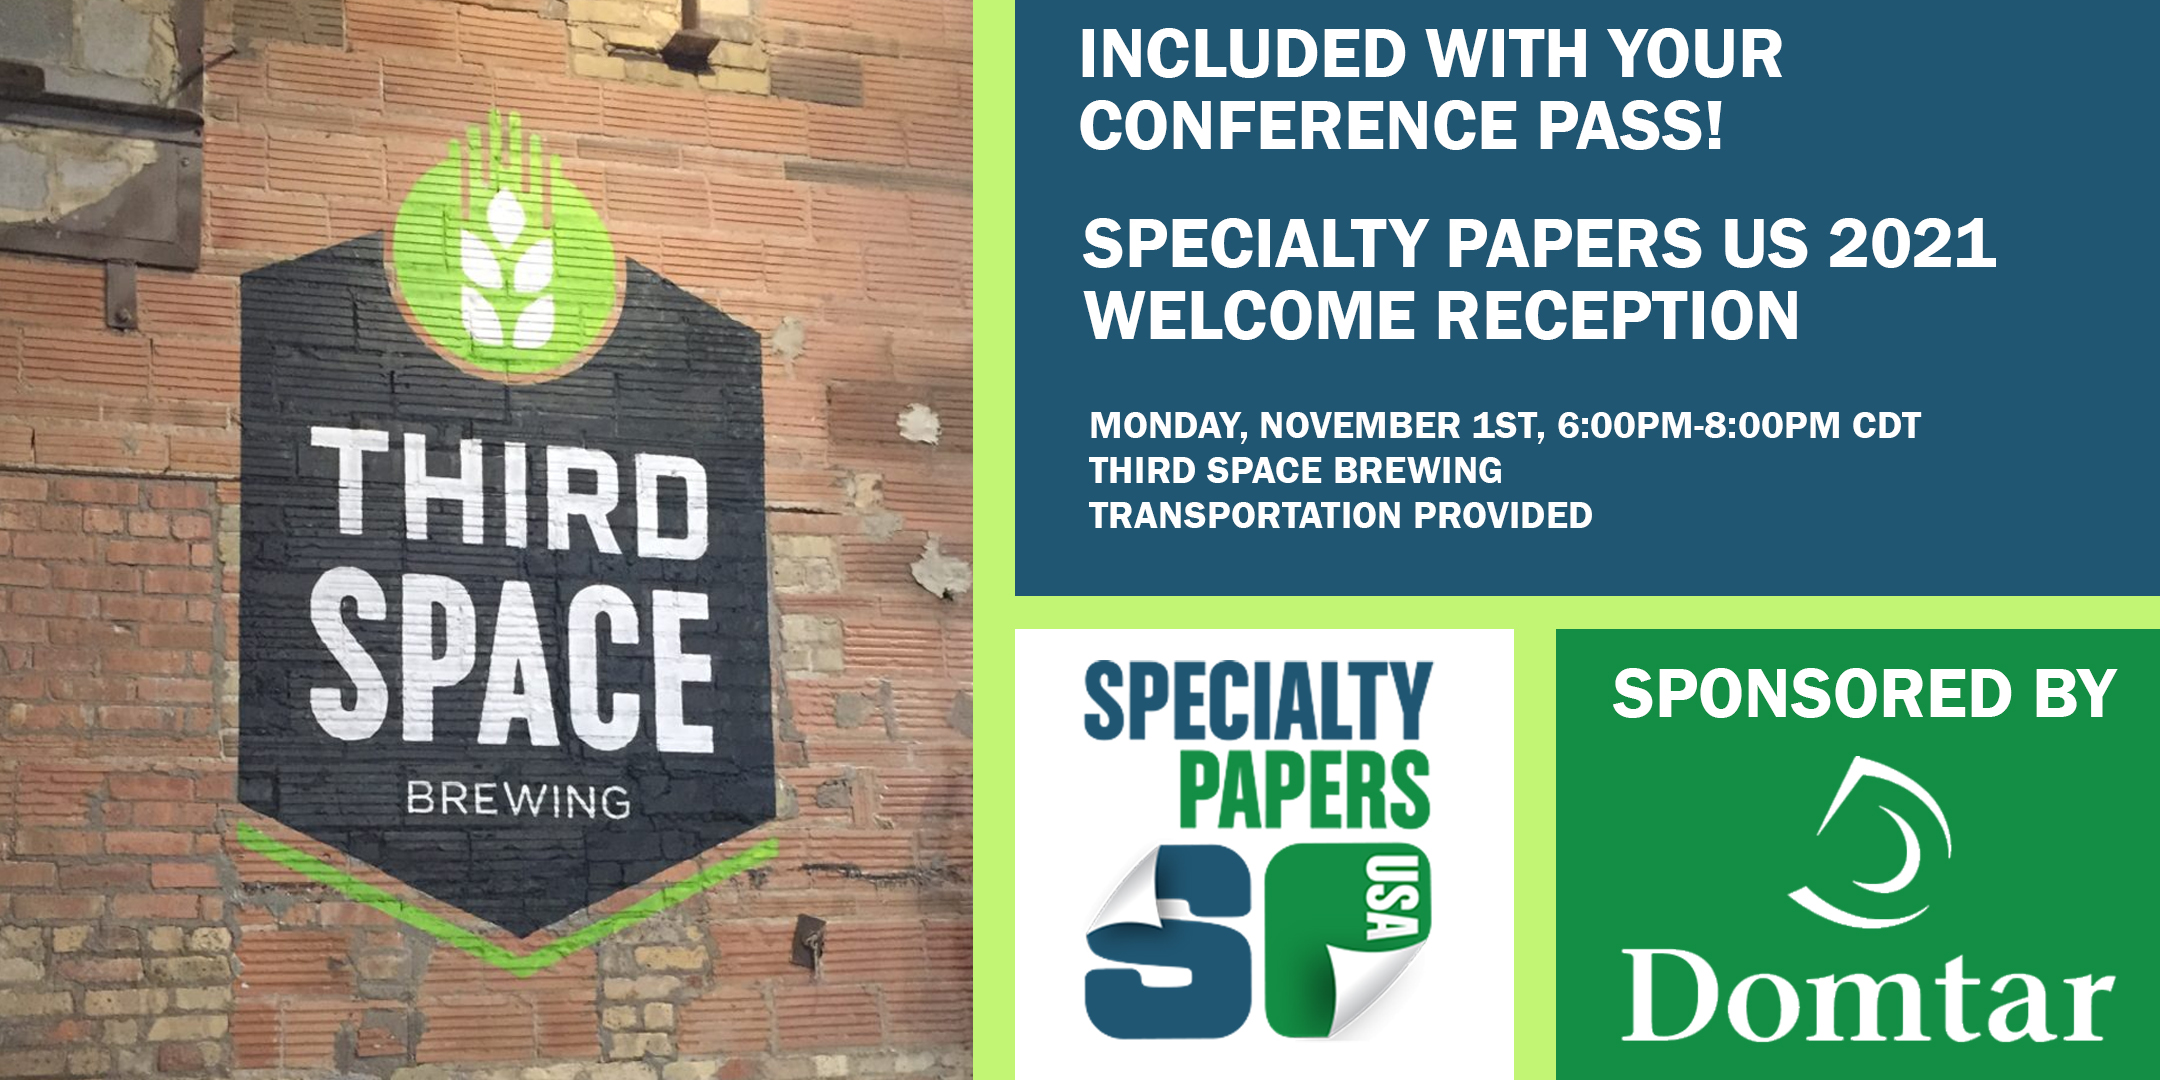 sp-hotel-welcome-recp-v3-for-email